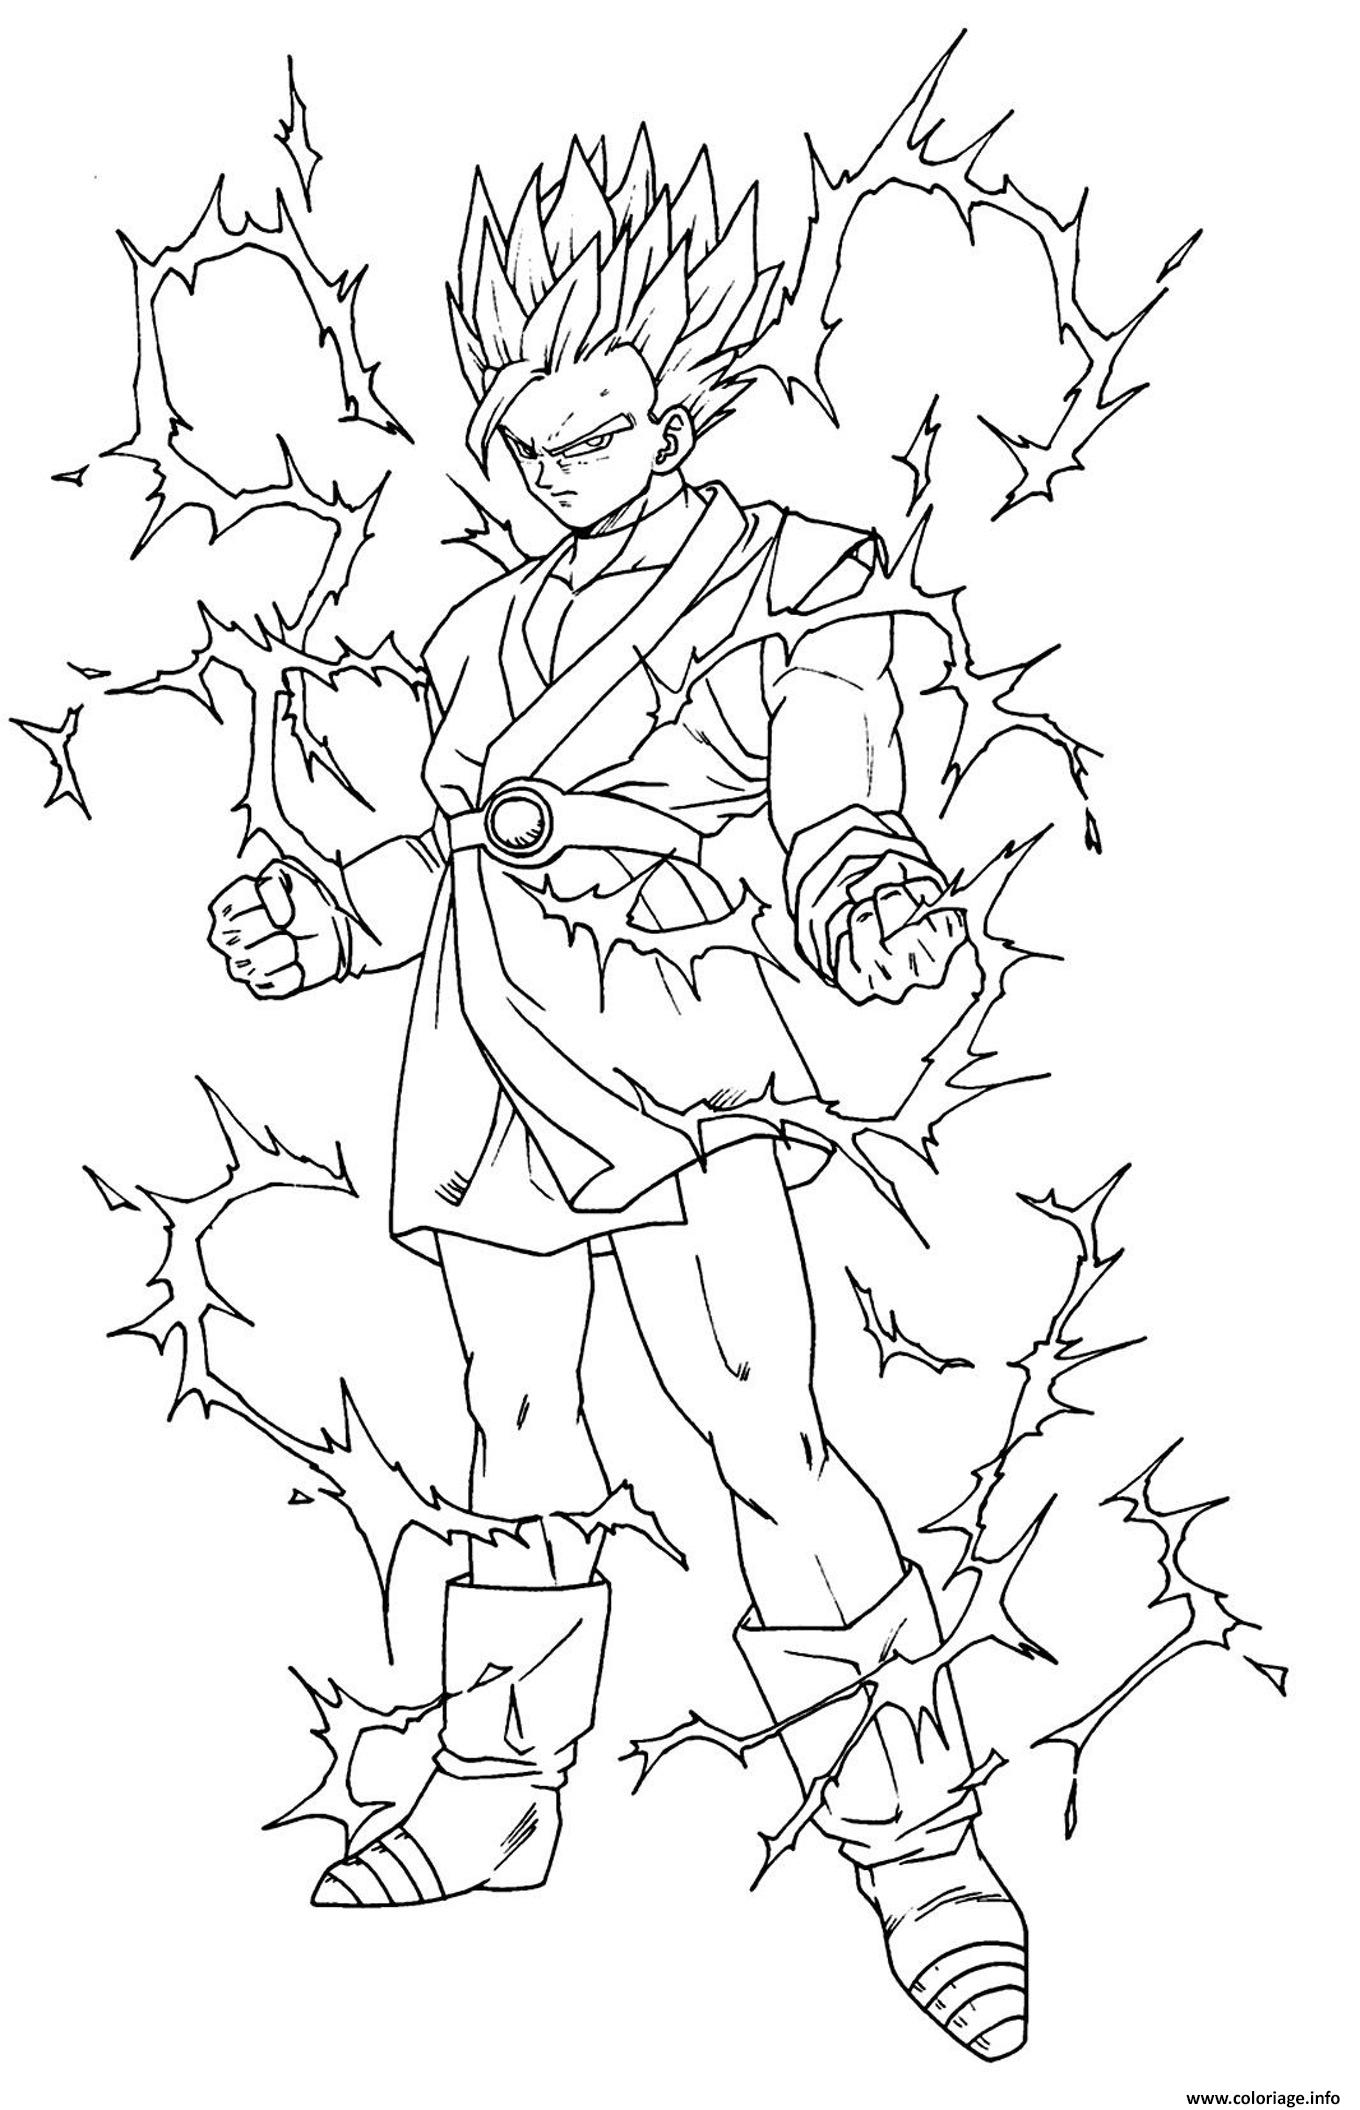 Coloriage dragon ball z sangoku super sayen 5 - Dessin de dragon ball za imprimer ...